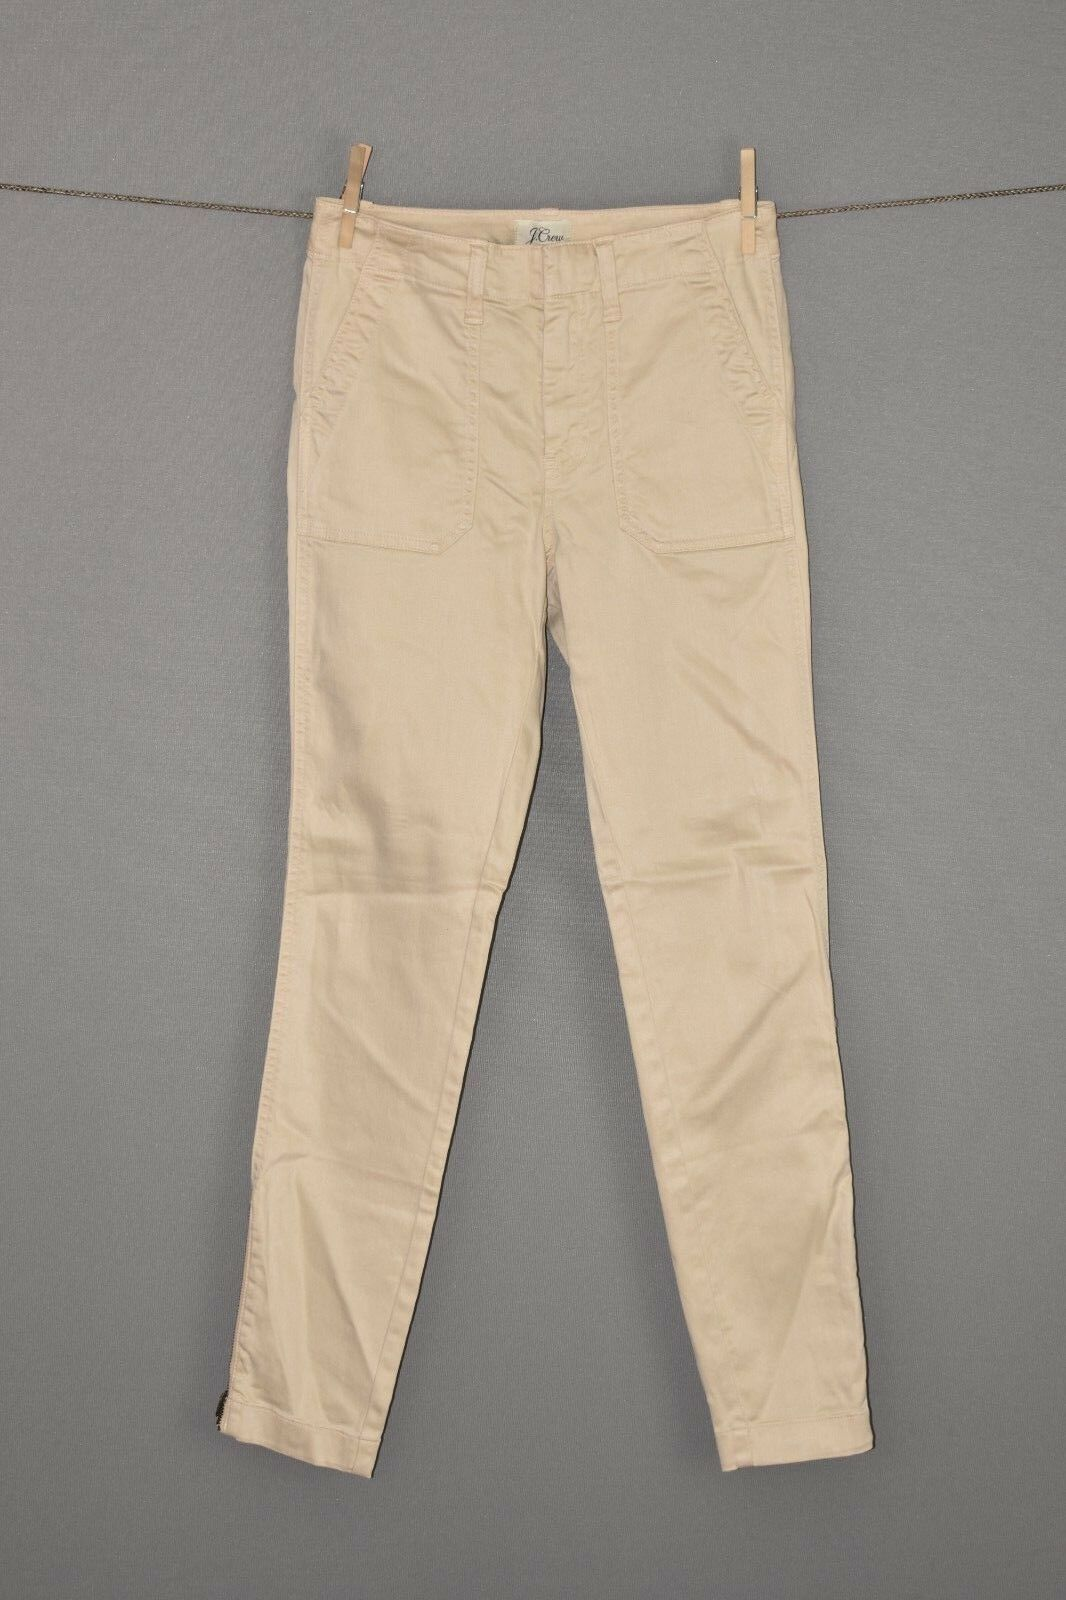 J.CREW NEW  98 Skinny Stretch Cargo Pant Zip Leg in Sunwashed Linen Size 24